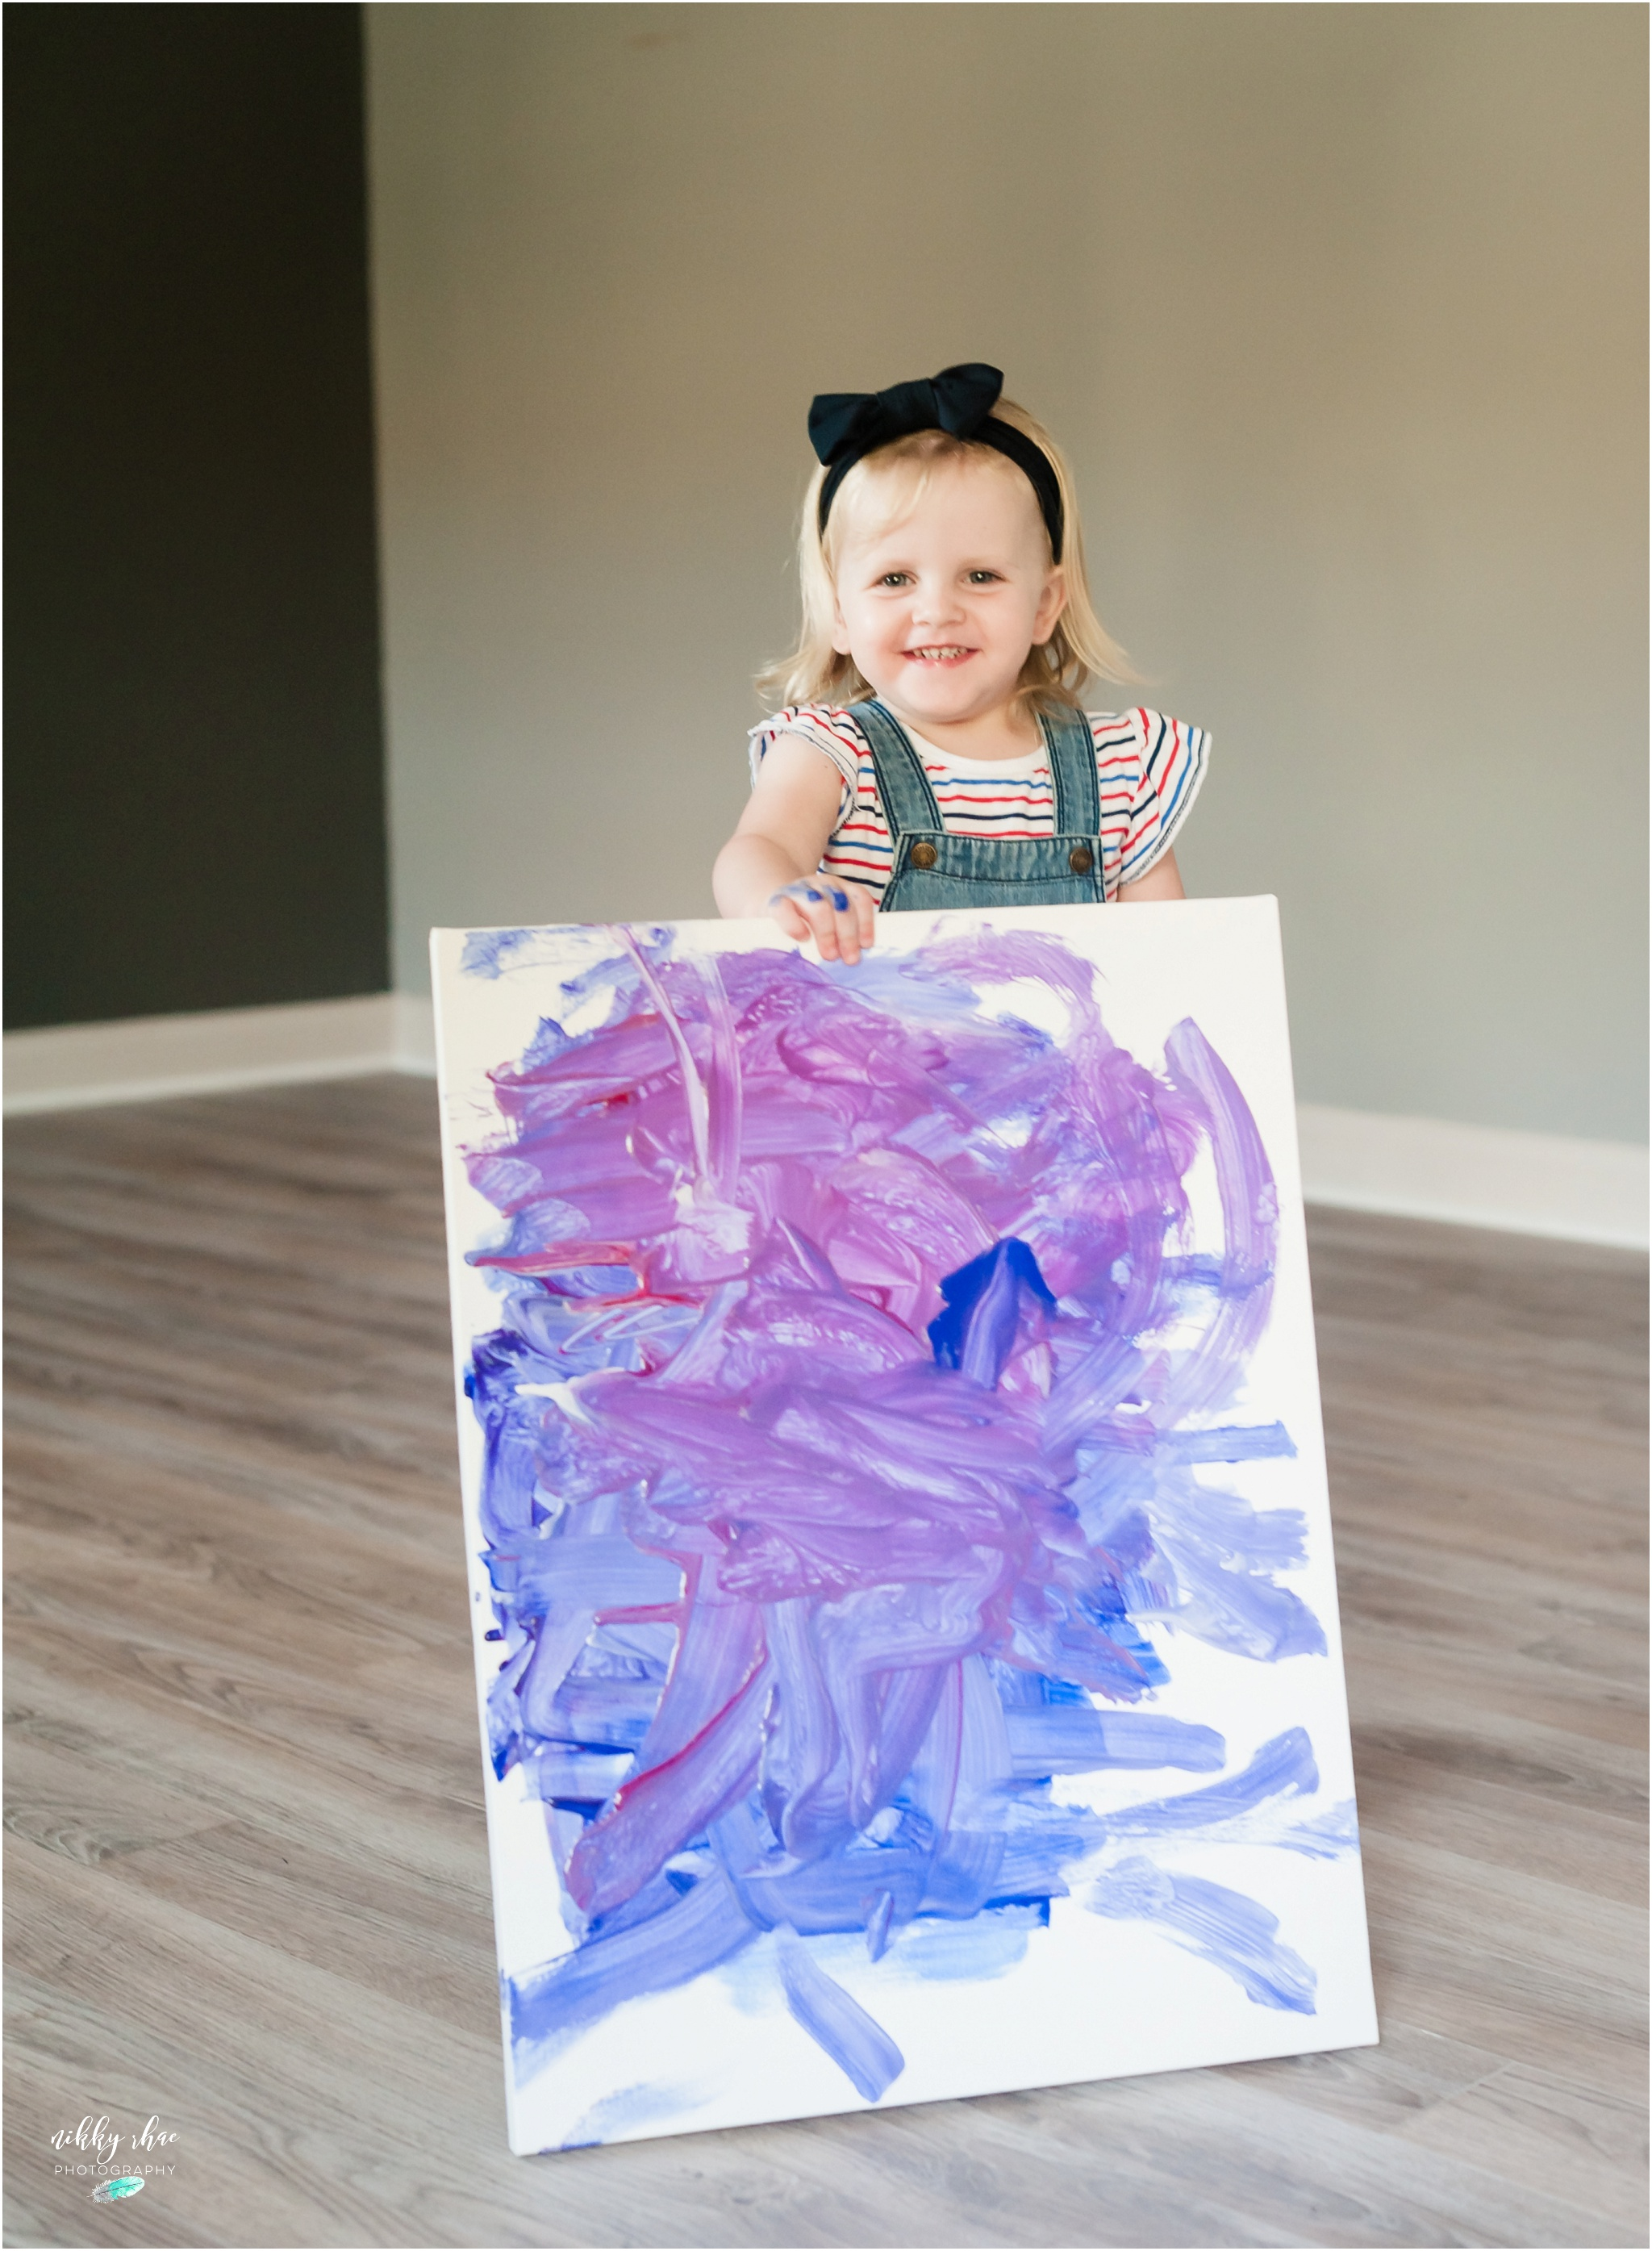 Watch out world! There is a new artist in town and she is good!